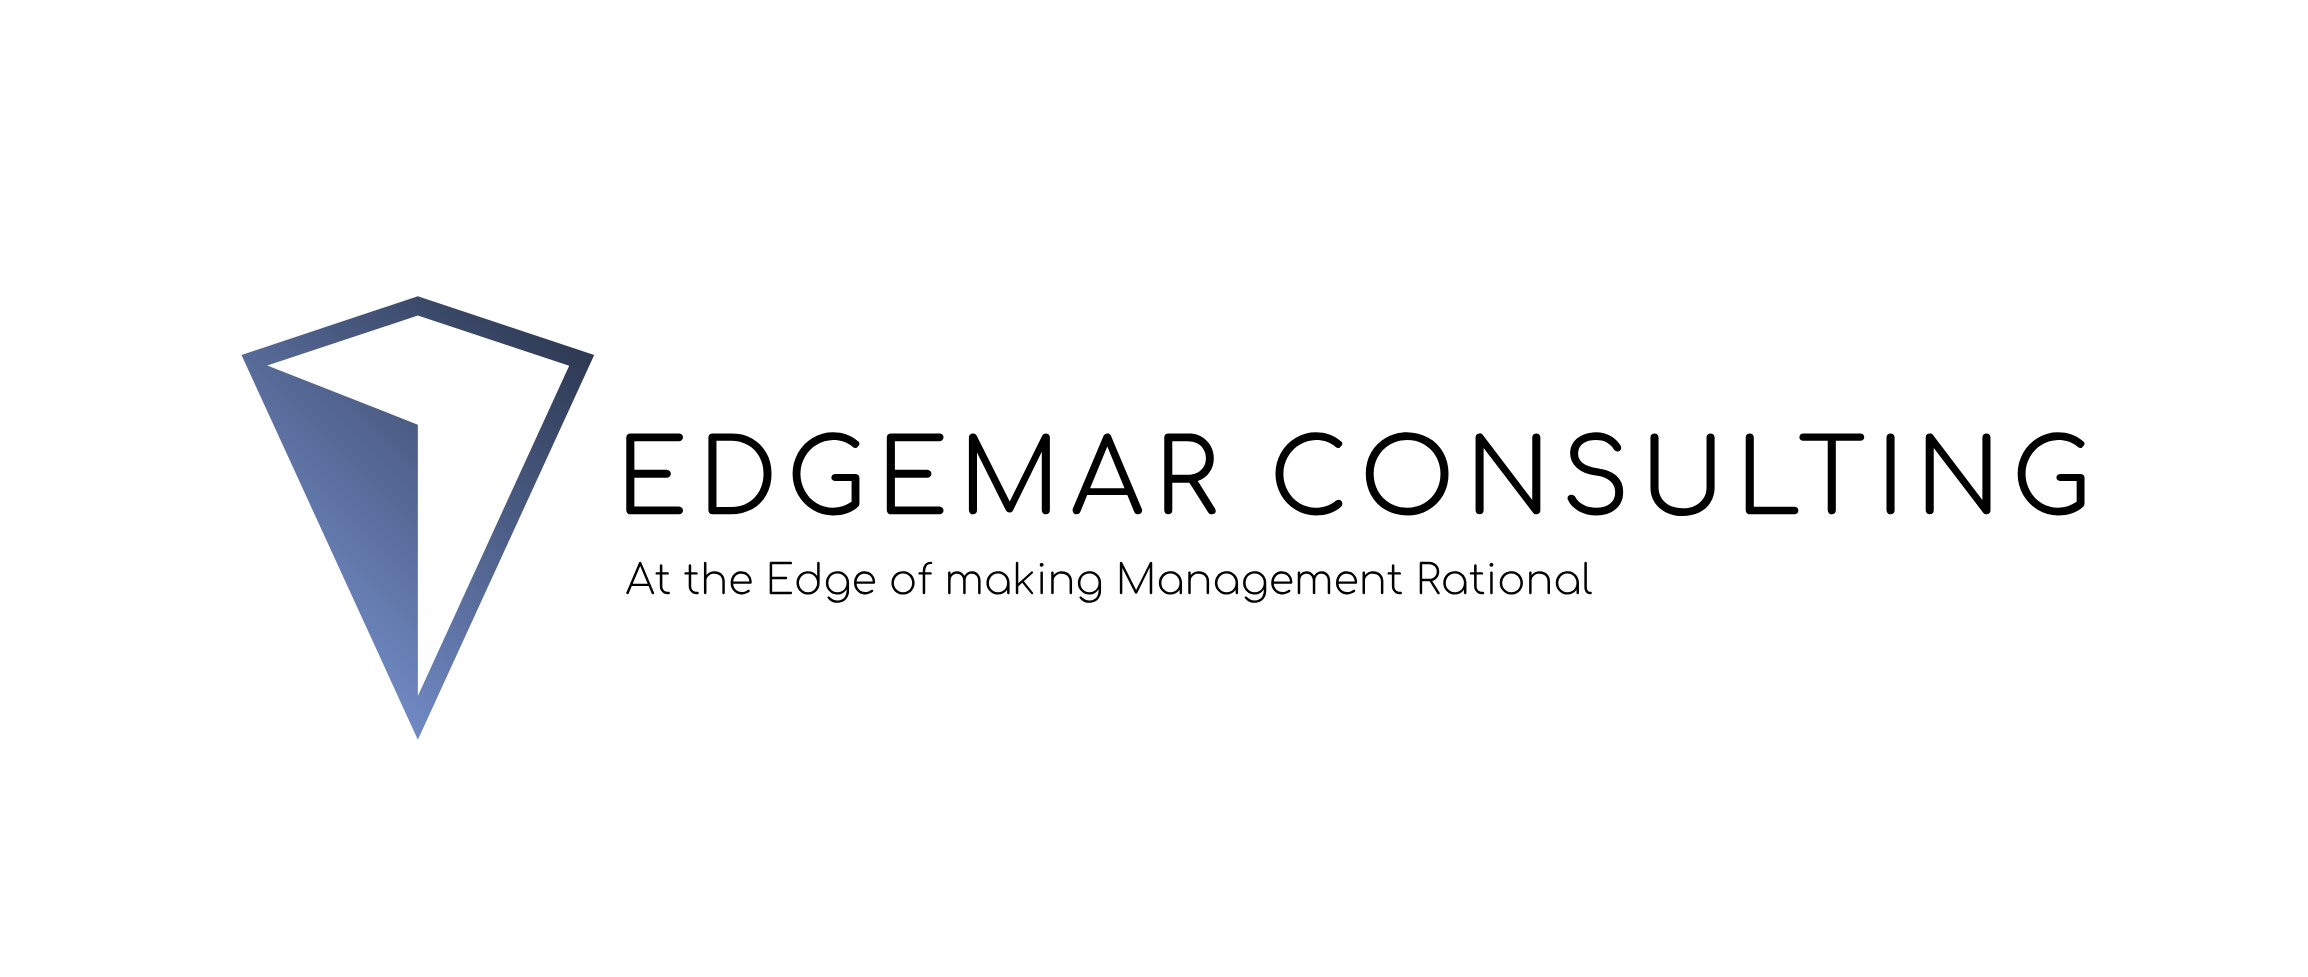 Edgemar Consulting